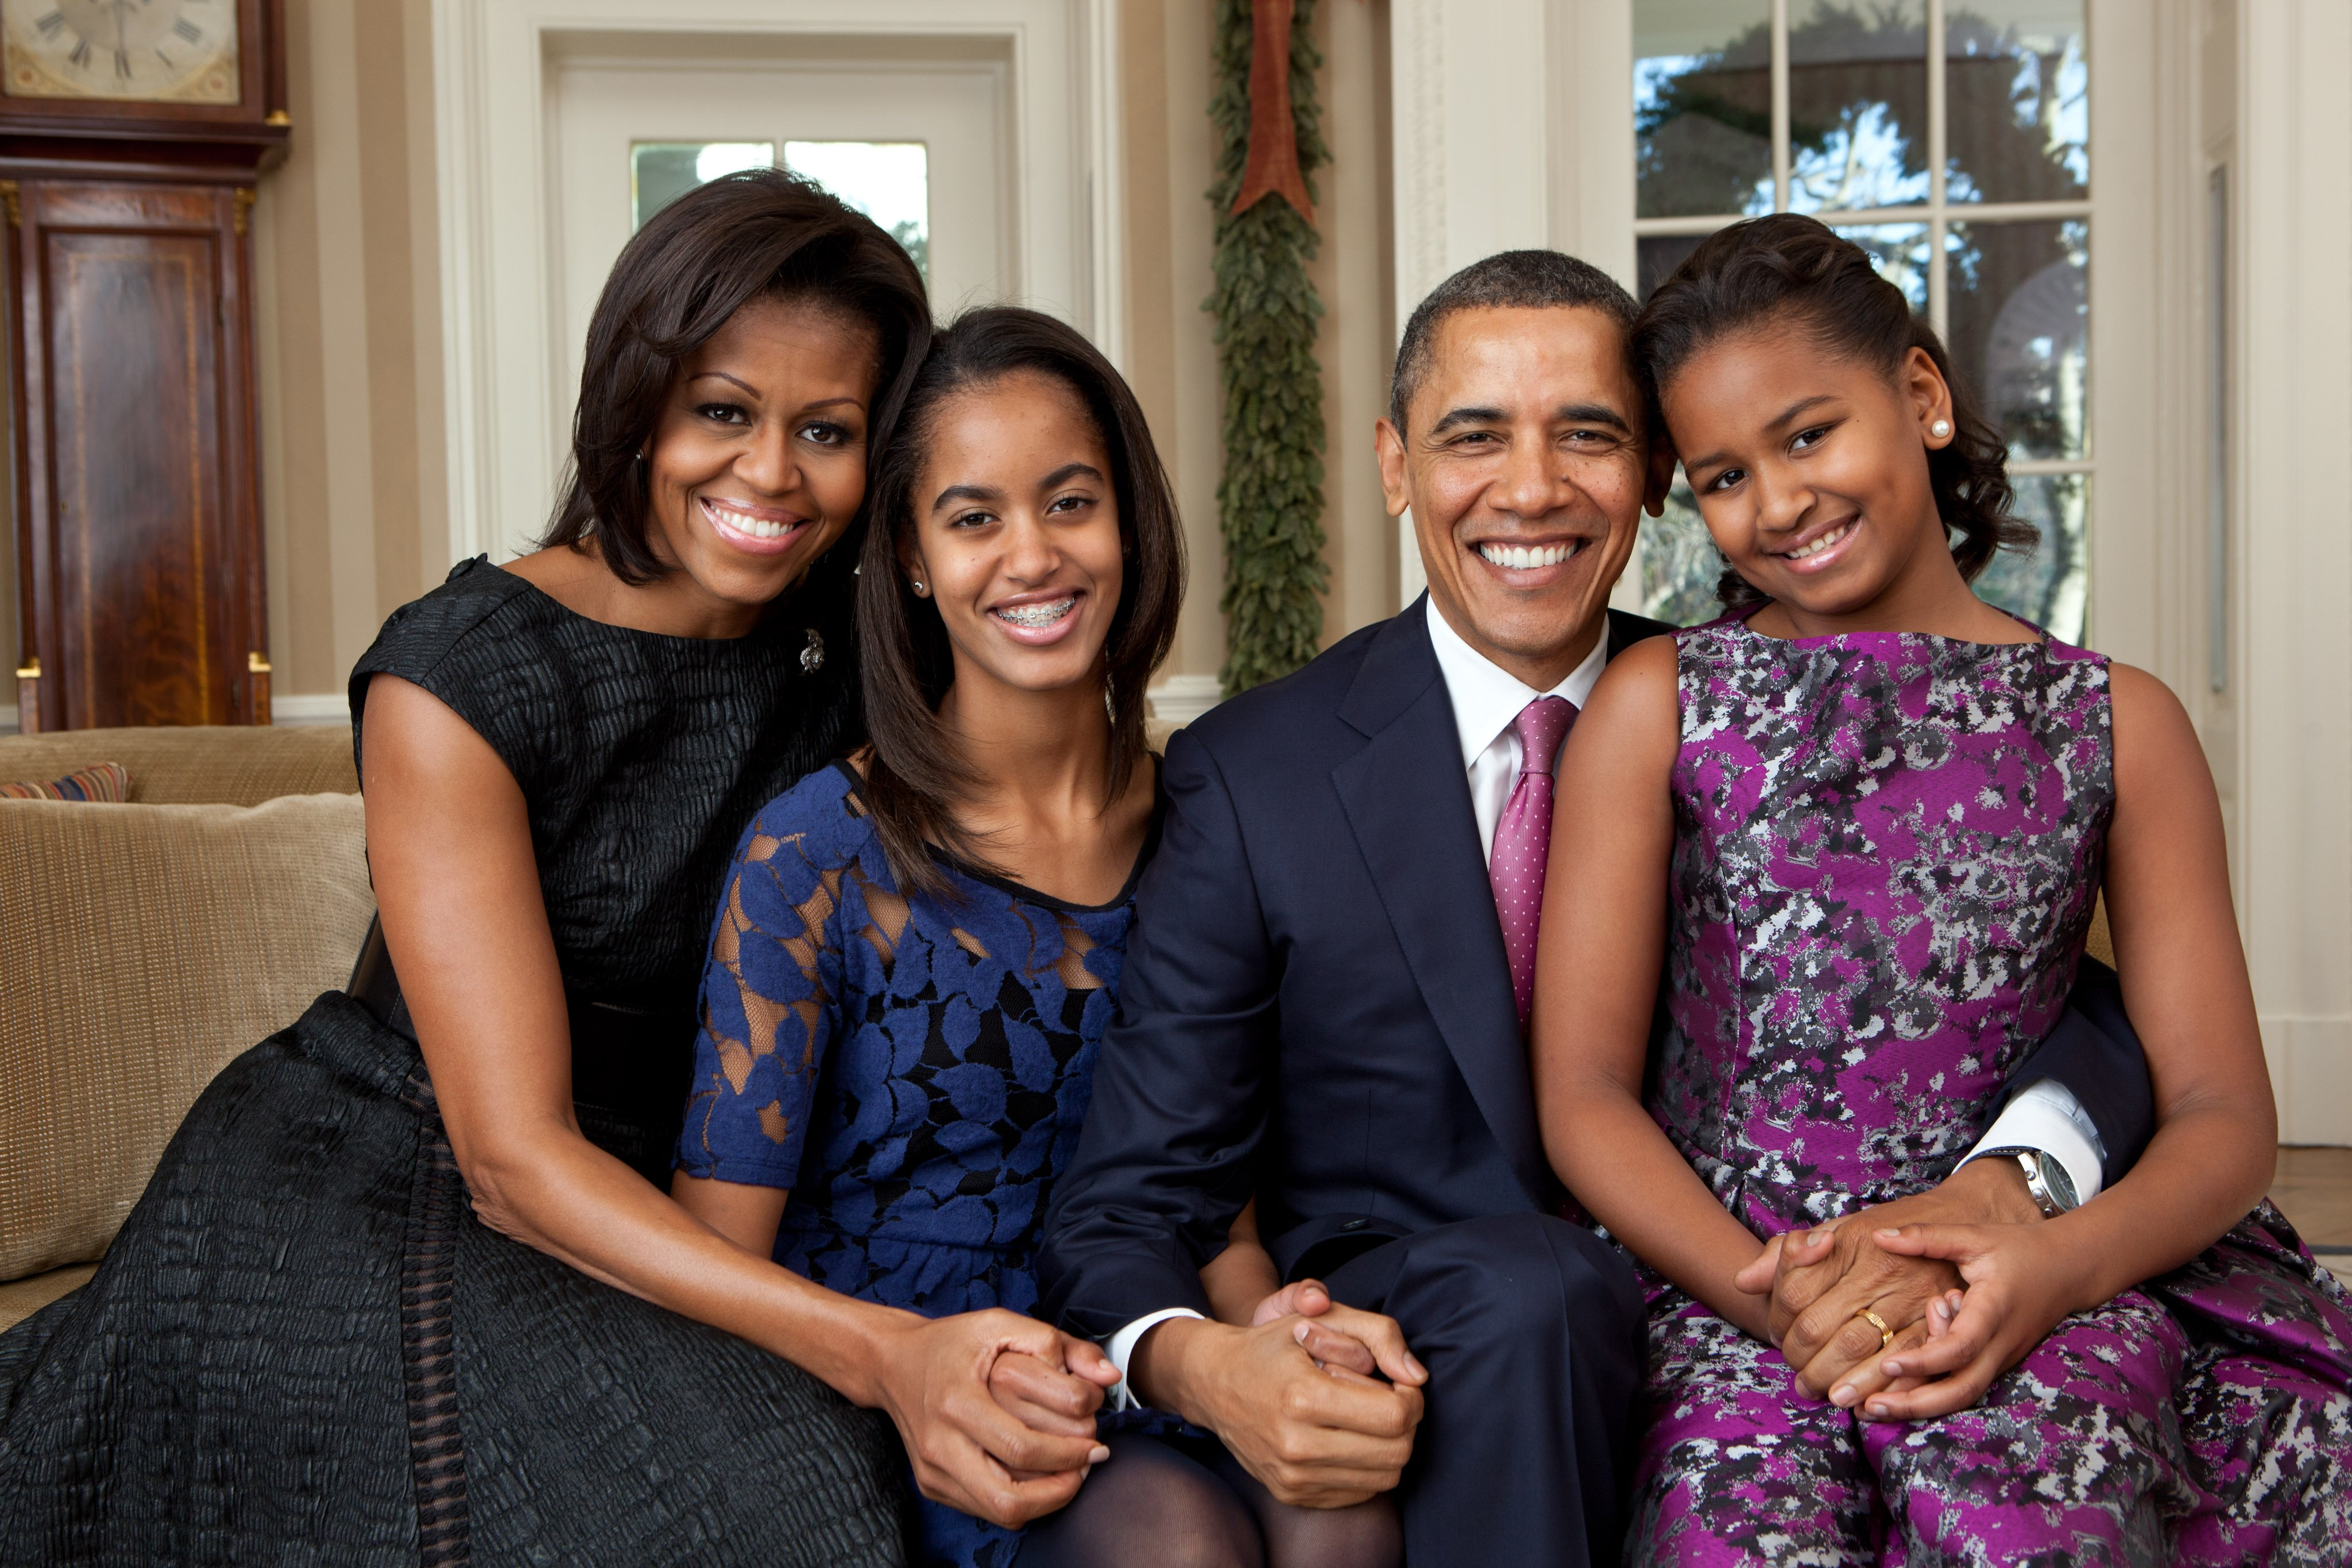 The Obamas. | Source: Getty Images